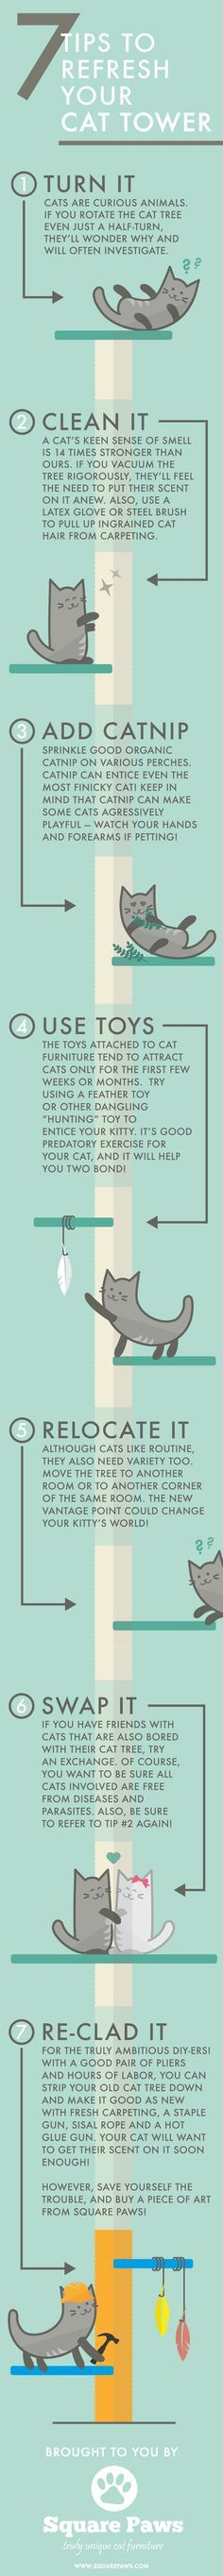 ♥ Cat Care Tips ♥ 7 Tips to Refresh Your Cat Tower — Square Paws-- This is a wonderful infographic about Ways To Make Your Cats tower interesting again for him. To be honest, I've never seen or thought of these ideas. Take a look, and see what you think.